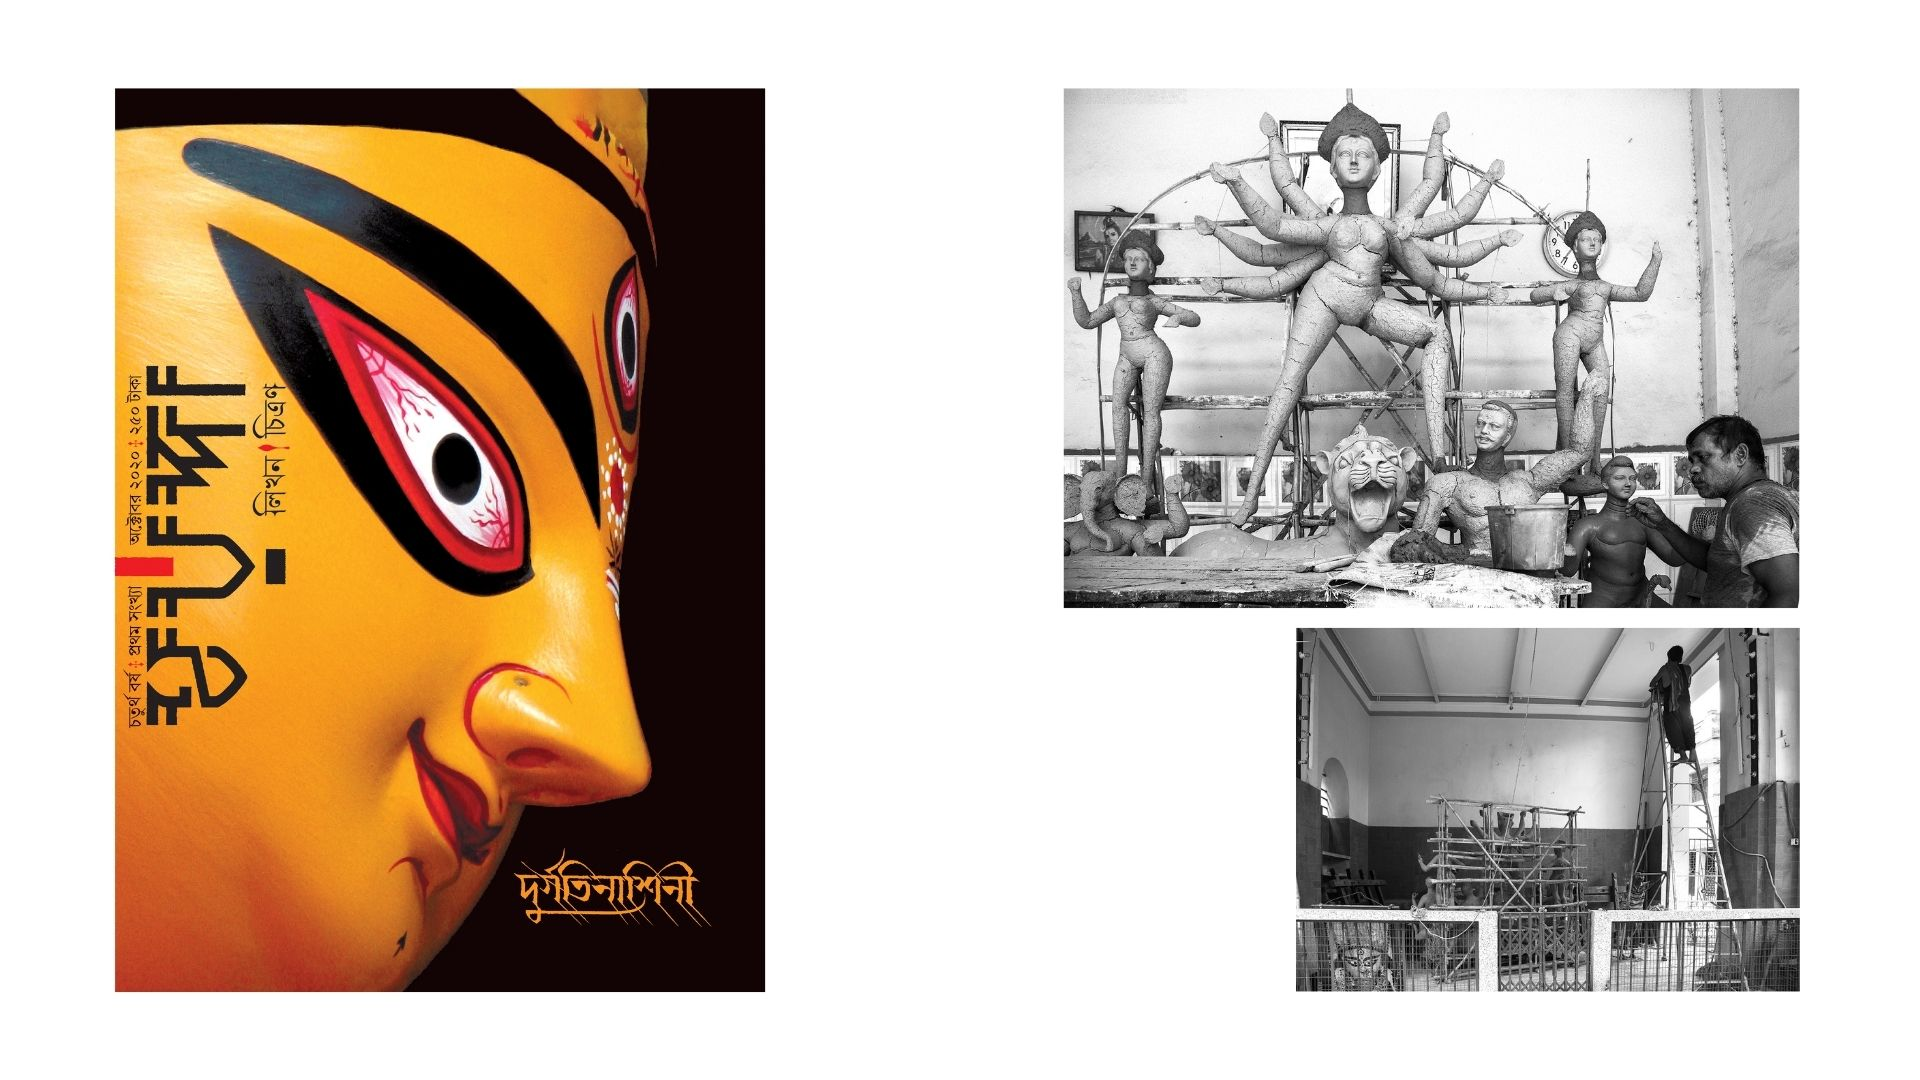 Imagery messaging for Durga Puja undergoes shift as Kolkatas creative industries contend with COVID impact